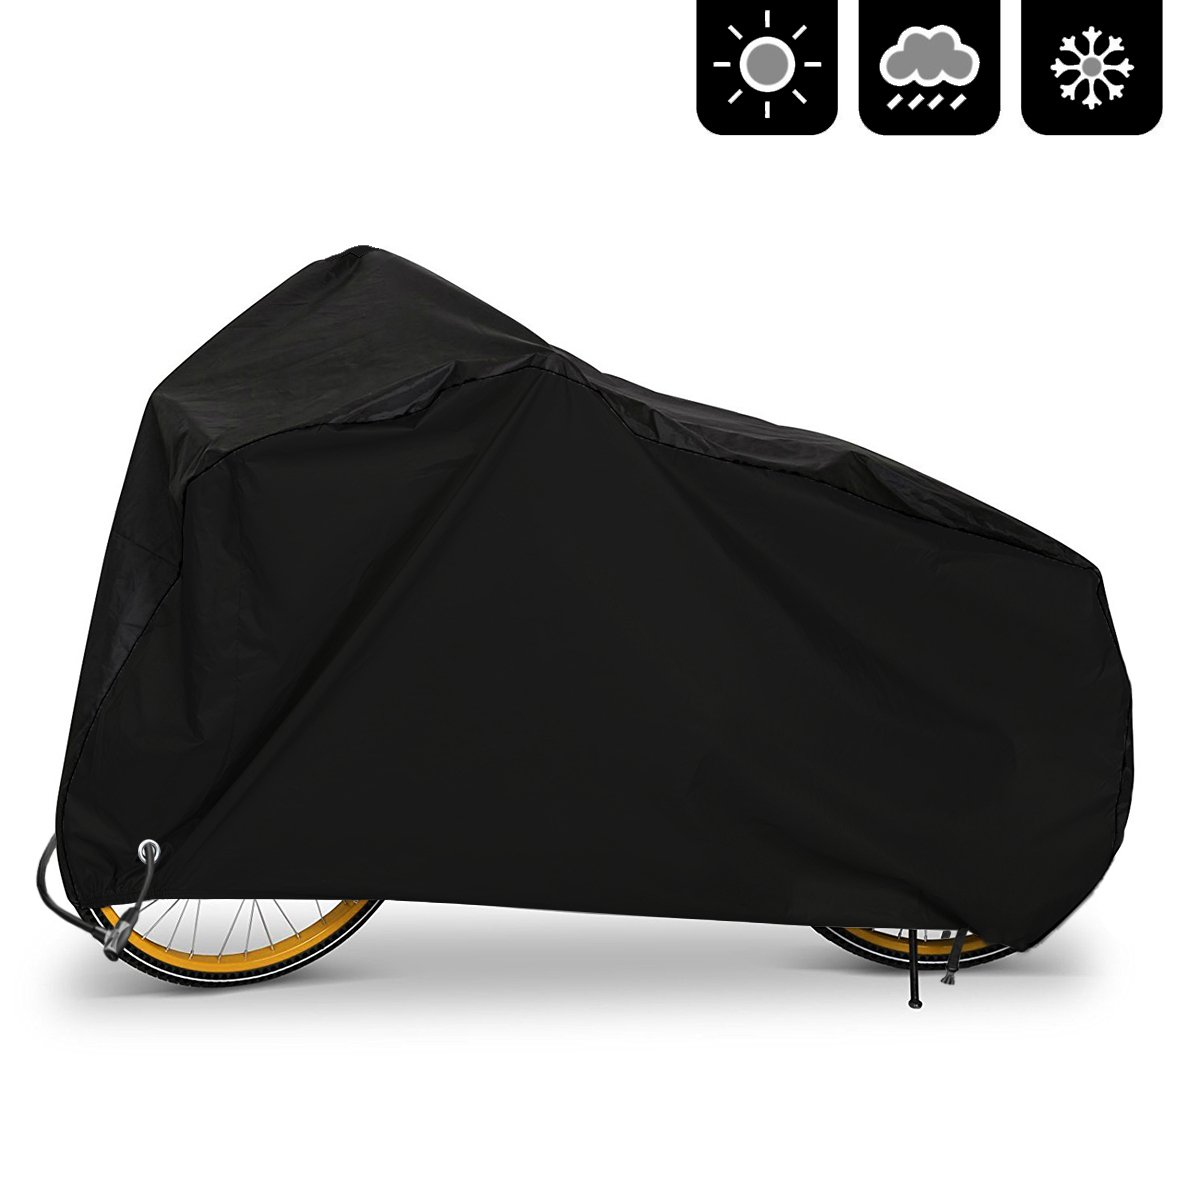 AIMUHO Bike Cover 210D Oxford Fabric Waterproof Bicycle Cover with Lock Holes, Outdoor Bicycle Rain Cover UV Protection for All Weather Conditions/XL Size